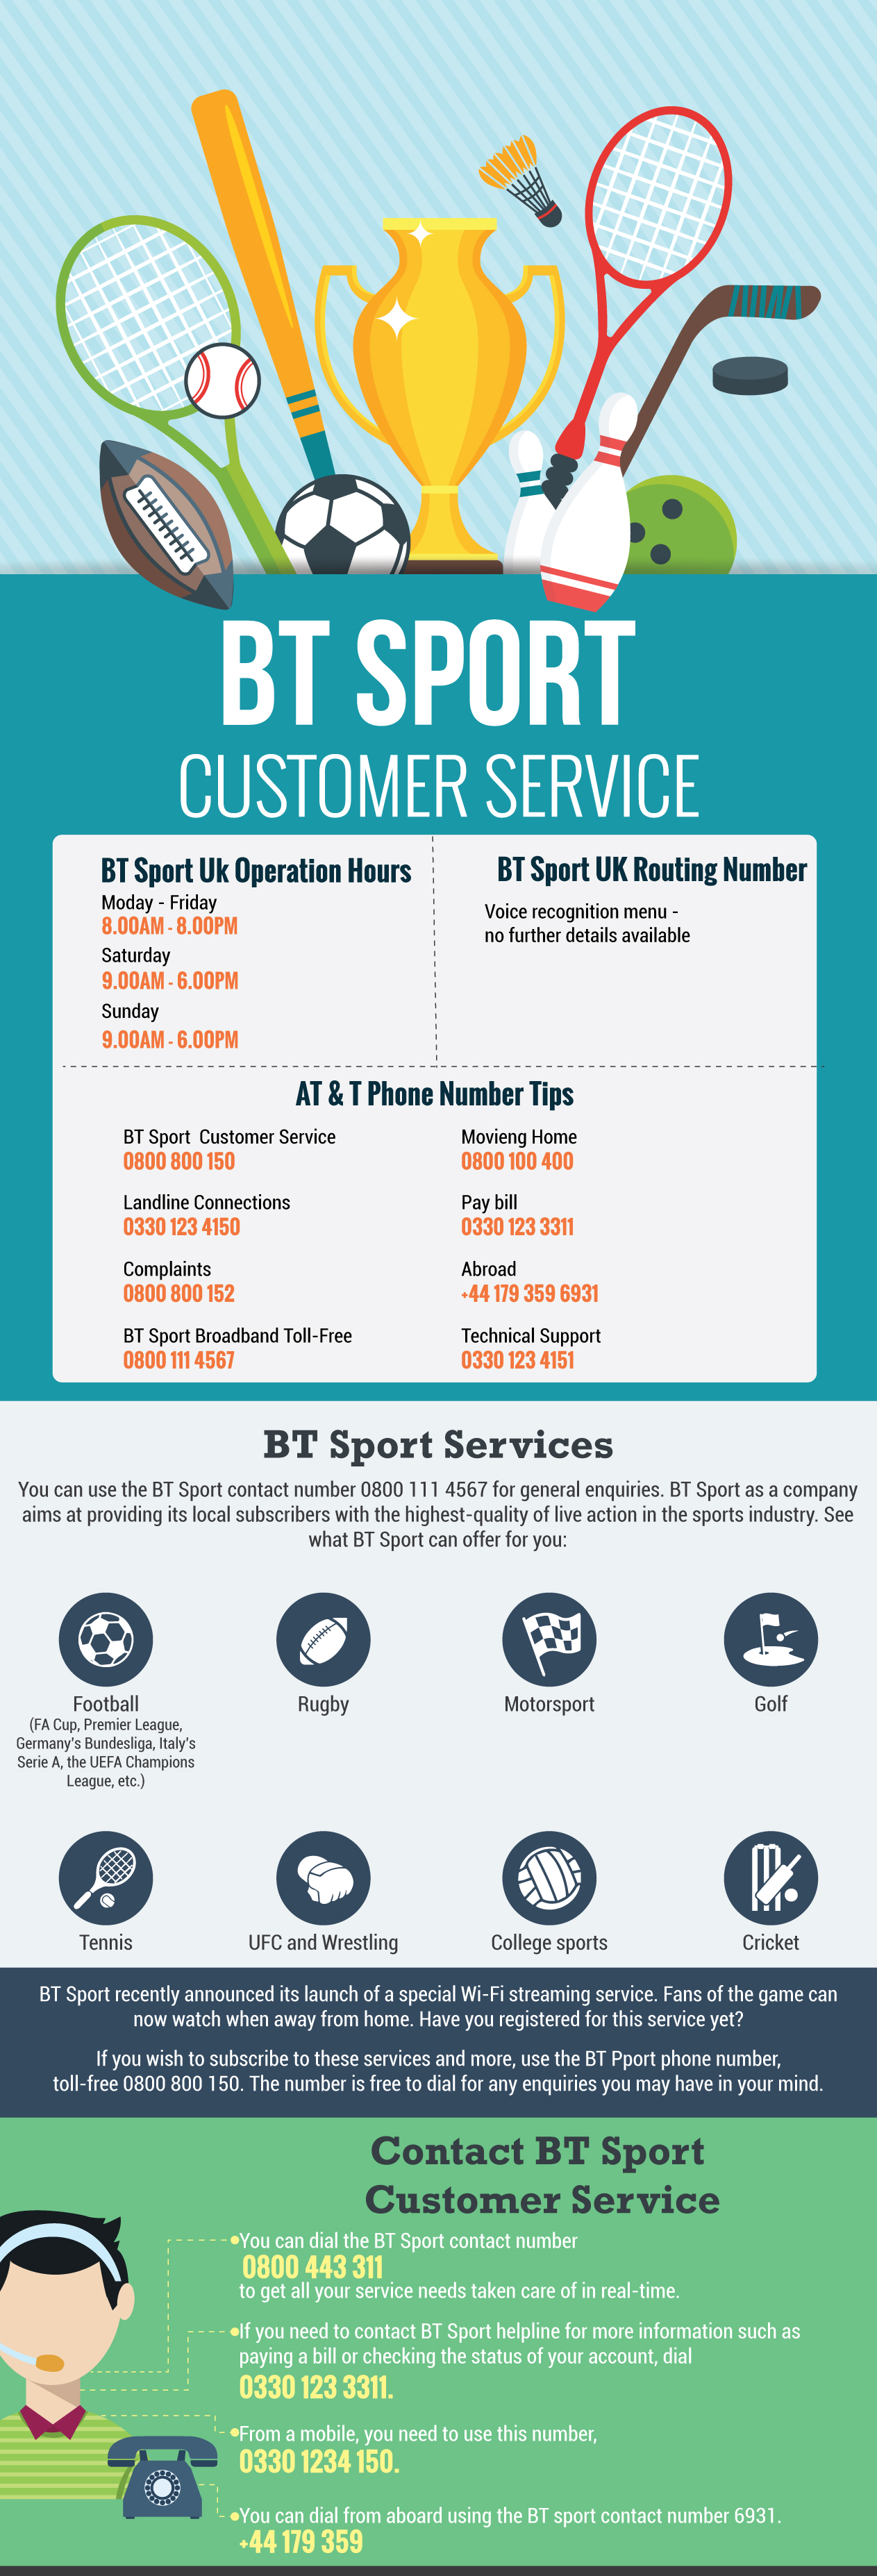 BT Sport Customer Service Contact Number